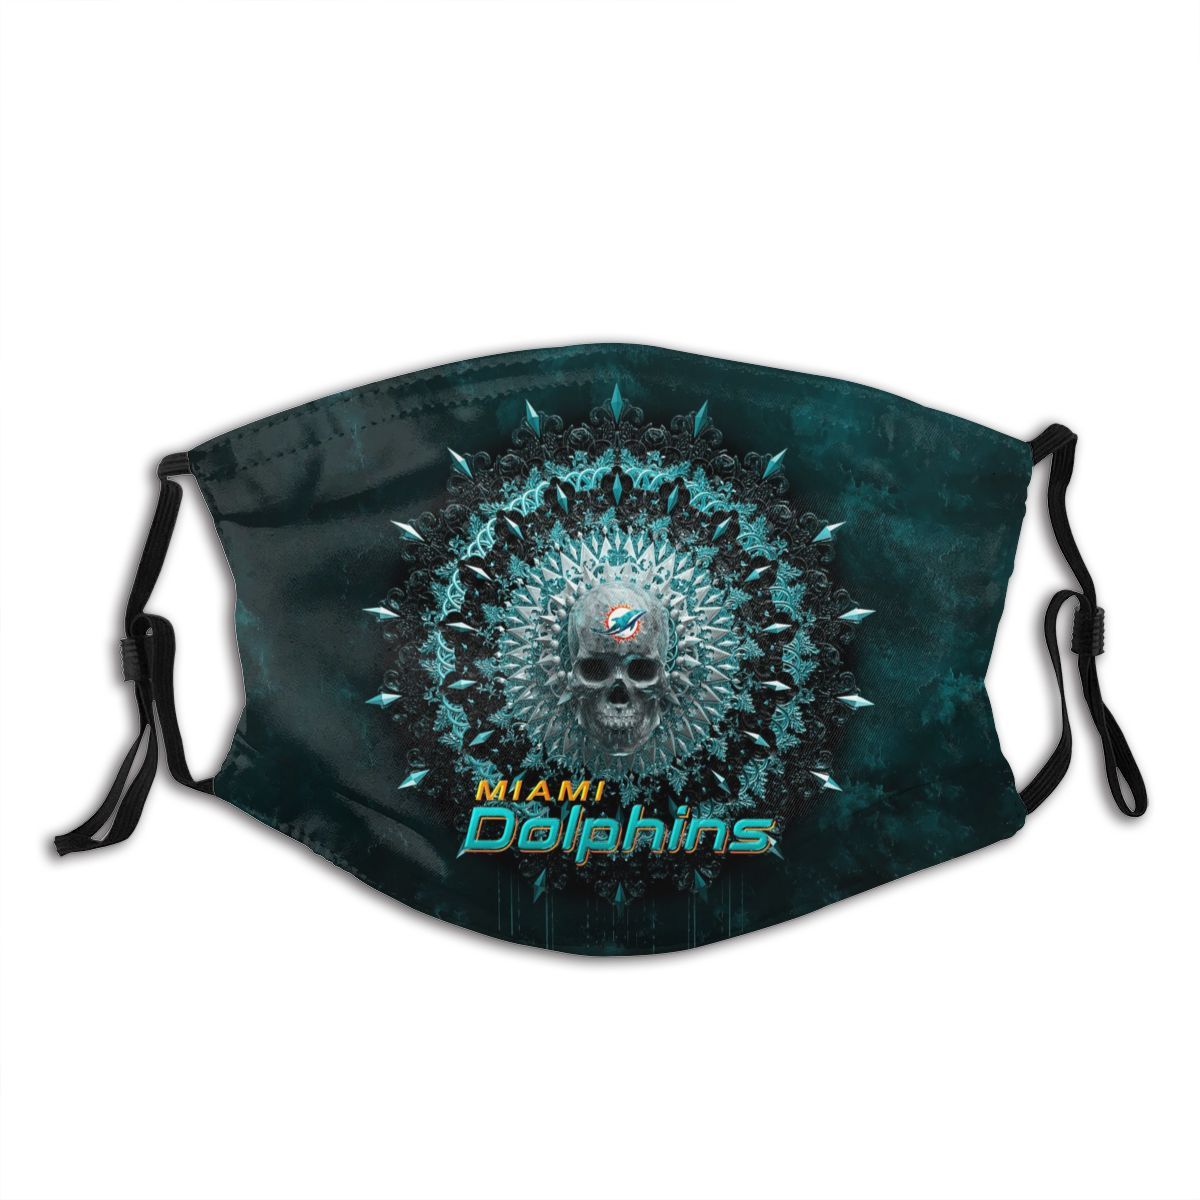 Dolphins Adult Cloth Face Covering With Filter